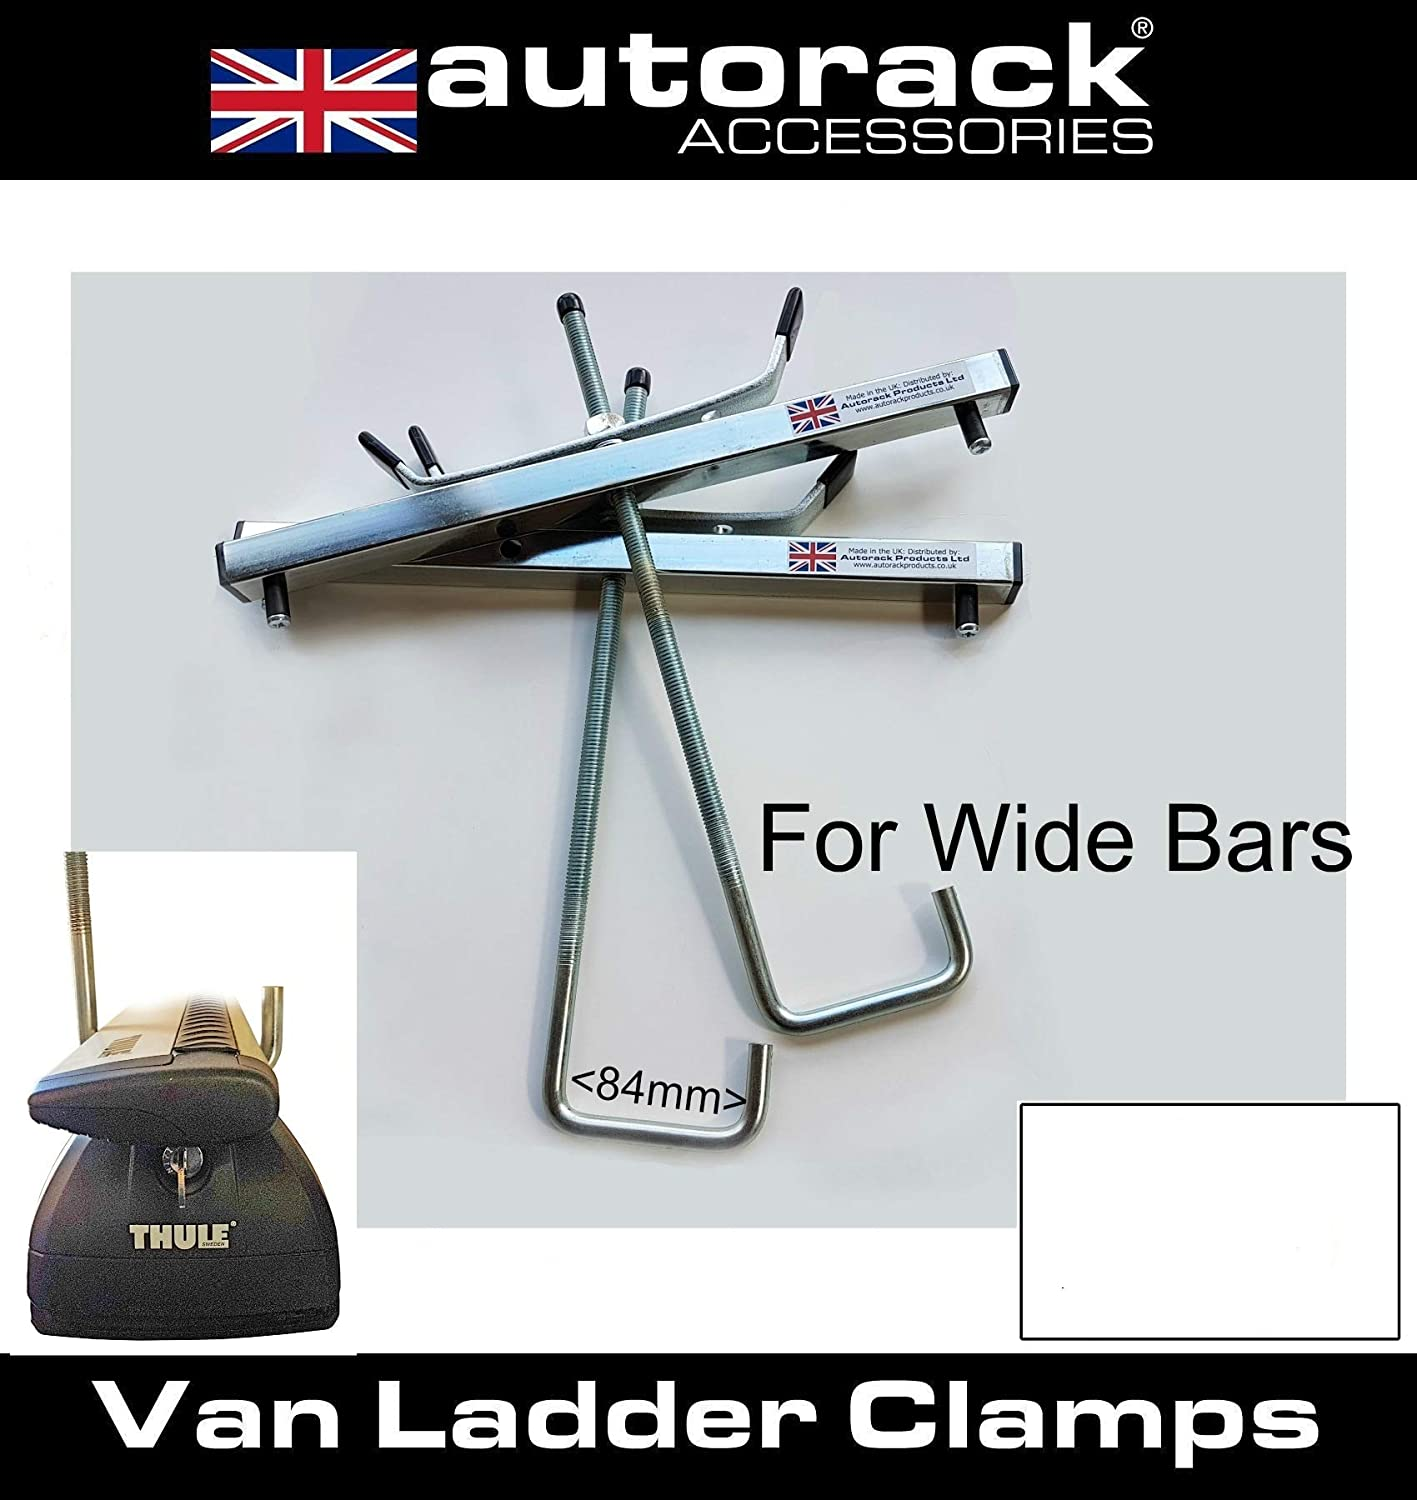 Rhino Safe Clamps MK 2 Version Van Ladder Clamps 24 Hour Delivery